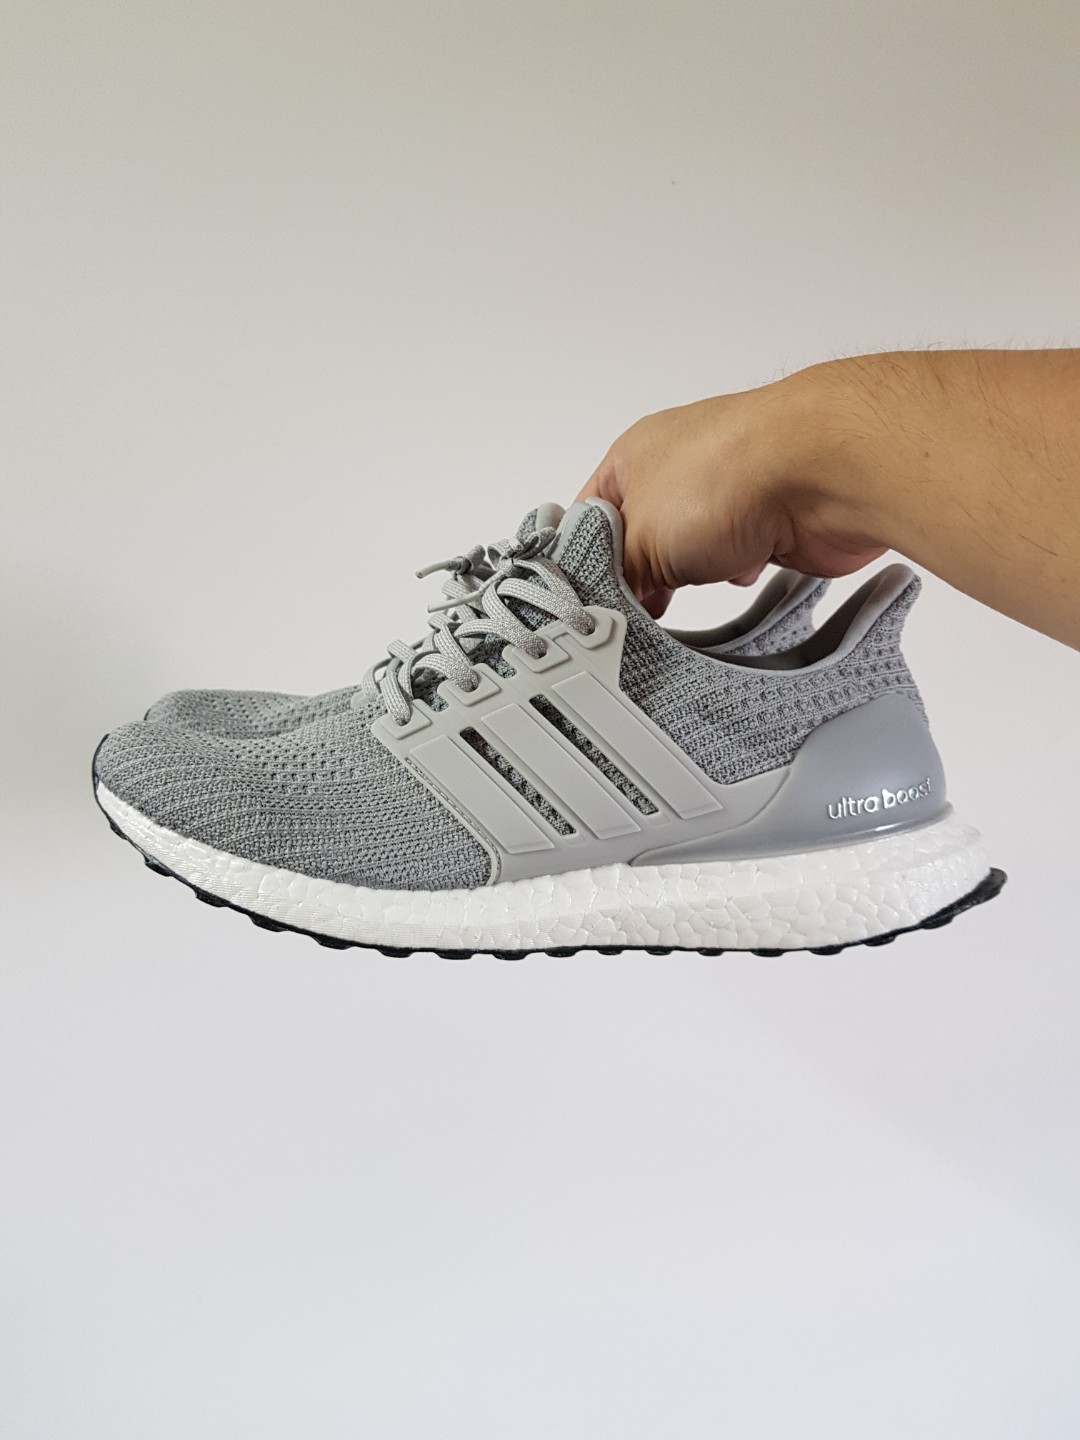 cheaper 44dae cc6e8 us10 adidas eqt support boost king push mens fashion footwear sneakers on  carousell size 7 cd9de d1775 - khbestnews.com